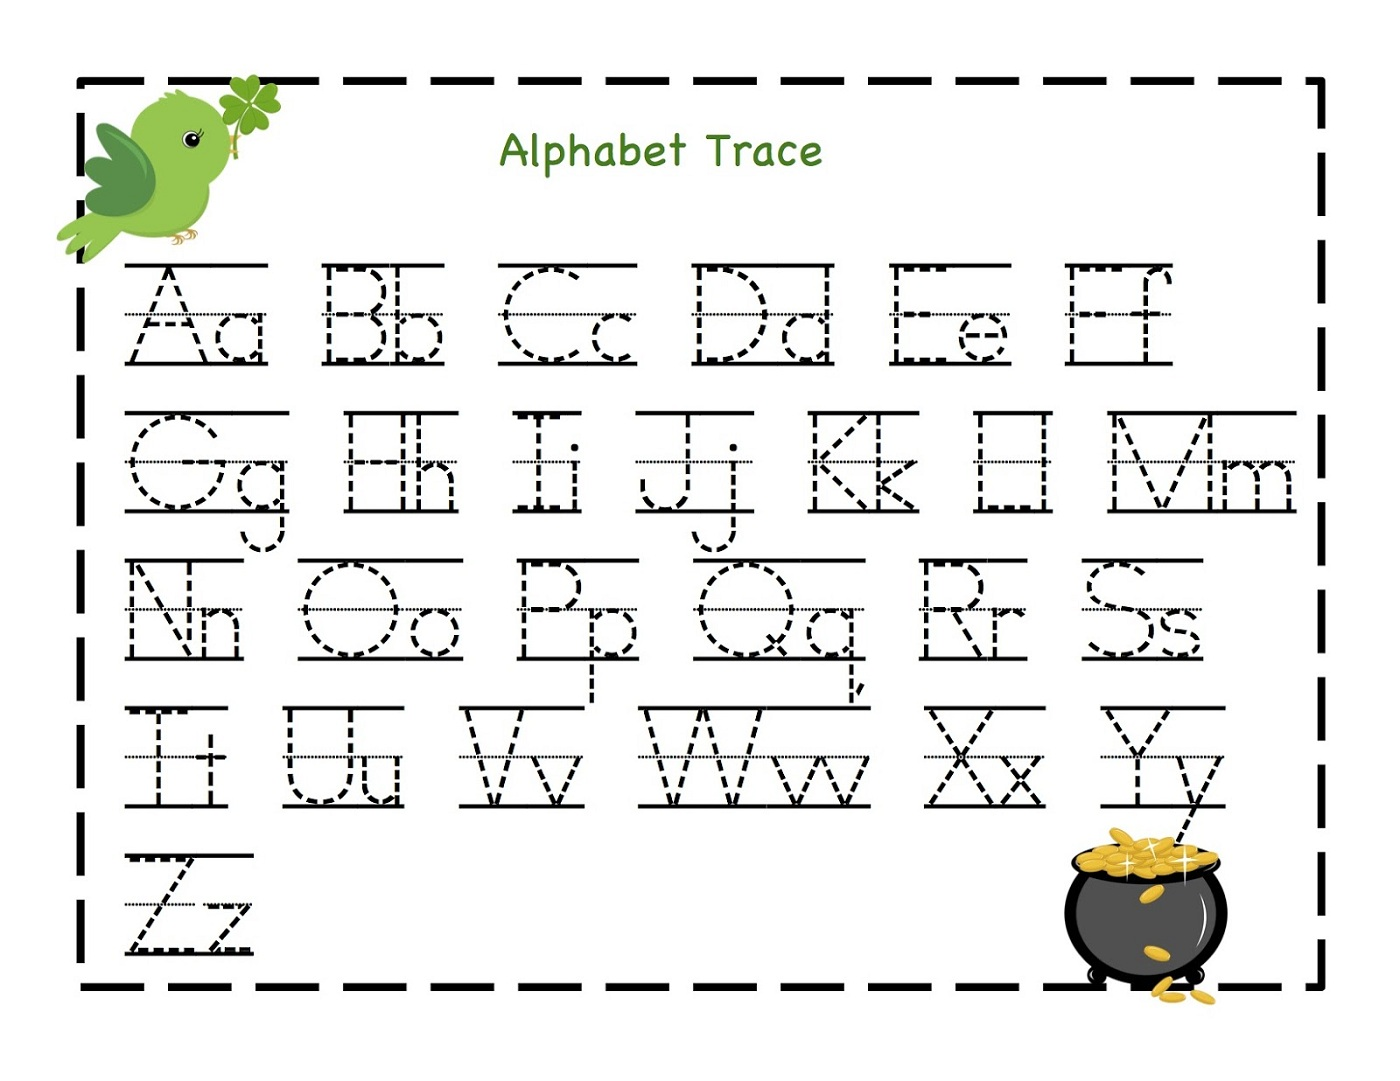 Printables Alphabet Worksheets For Preschool kindergarten worksheets alphabet syndeomedia printable activity shelter